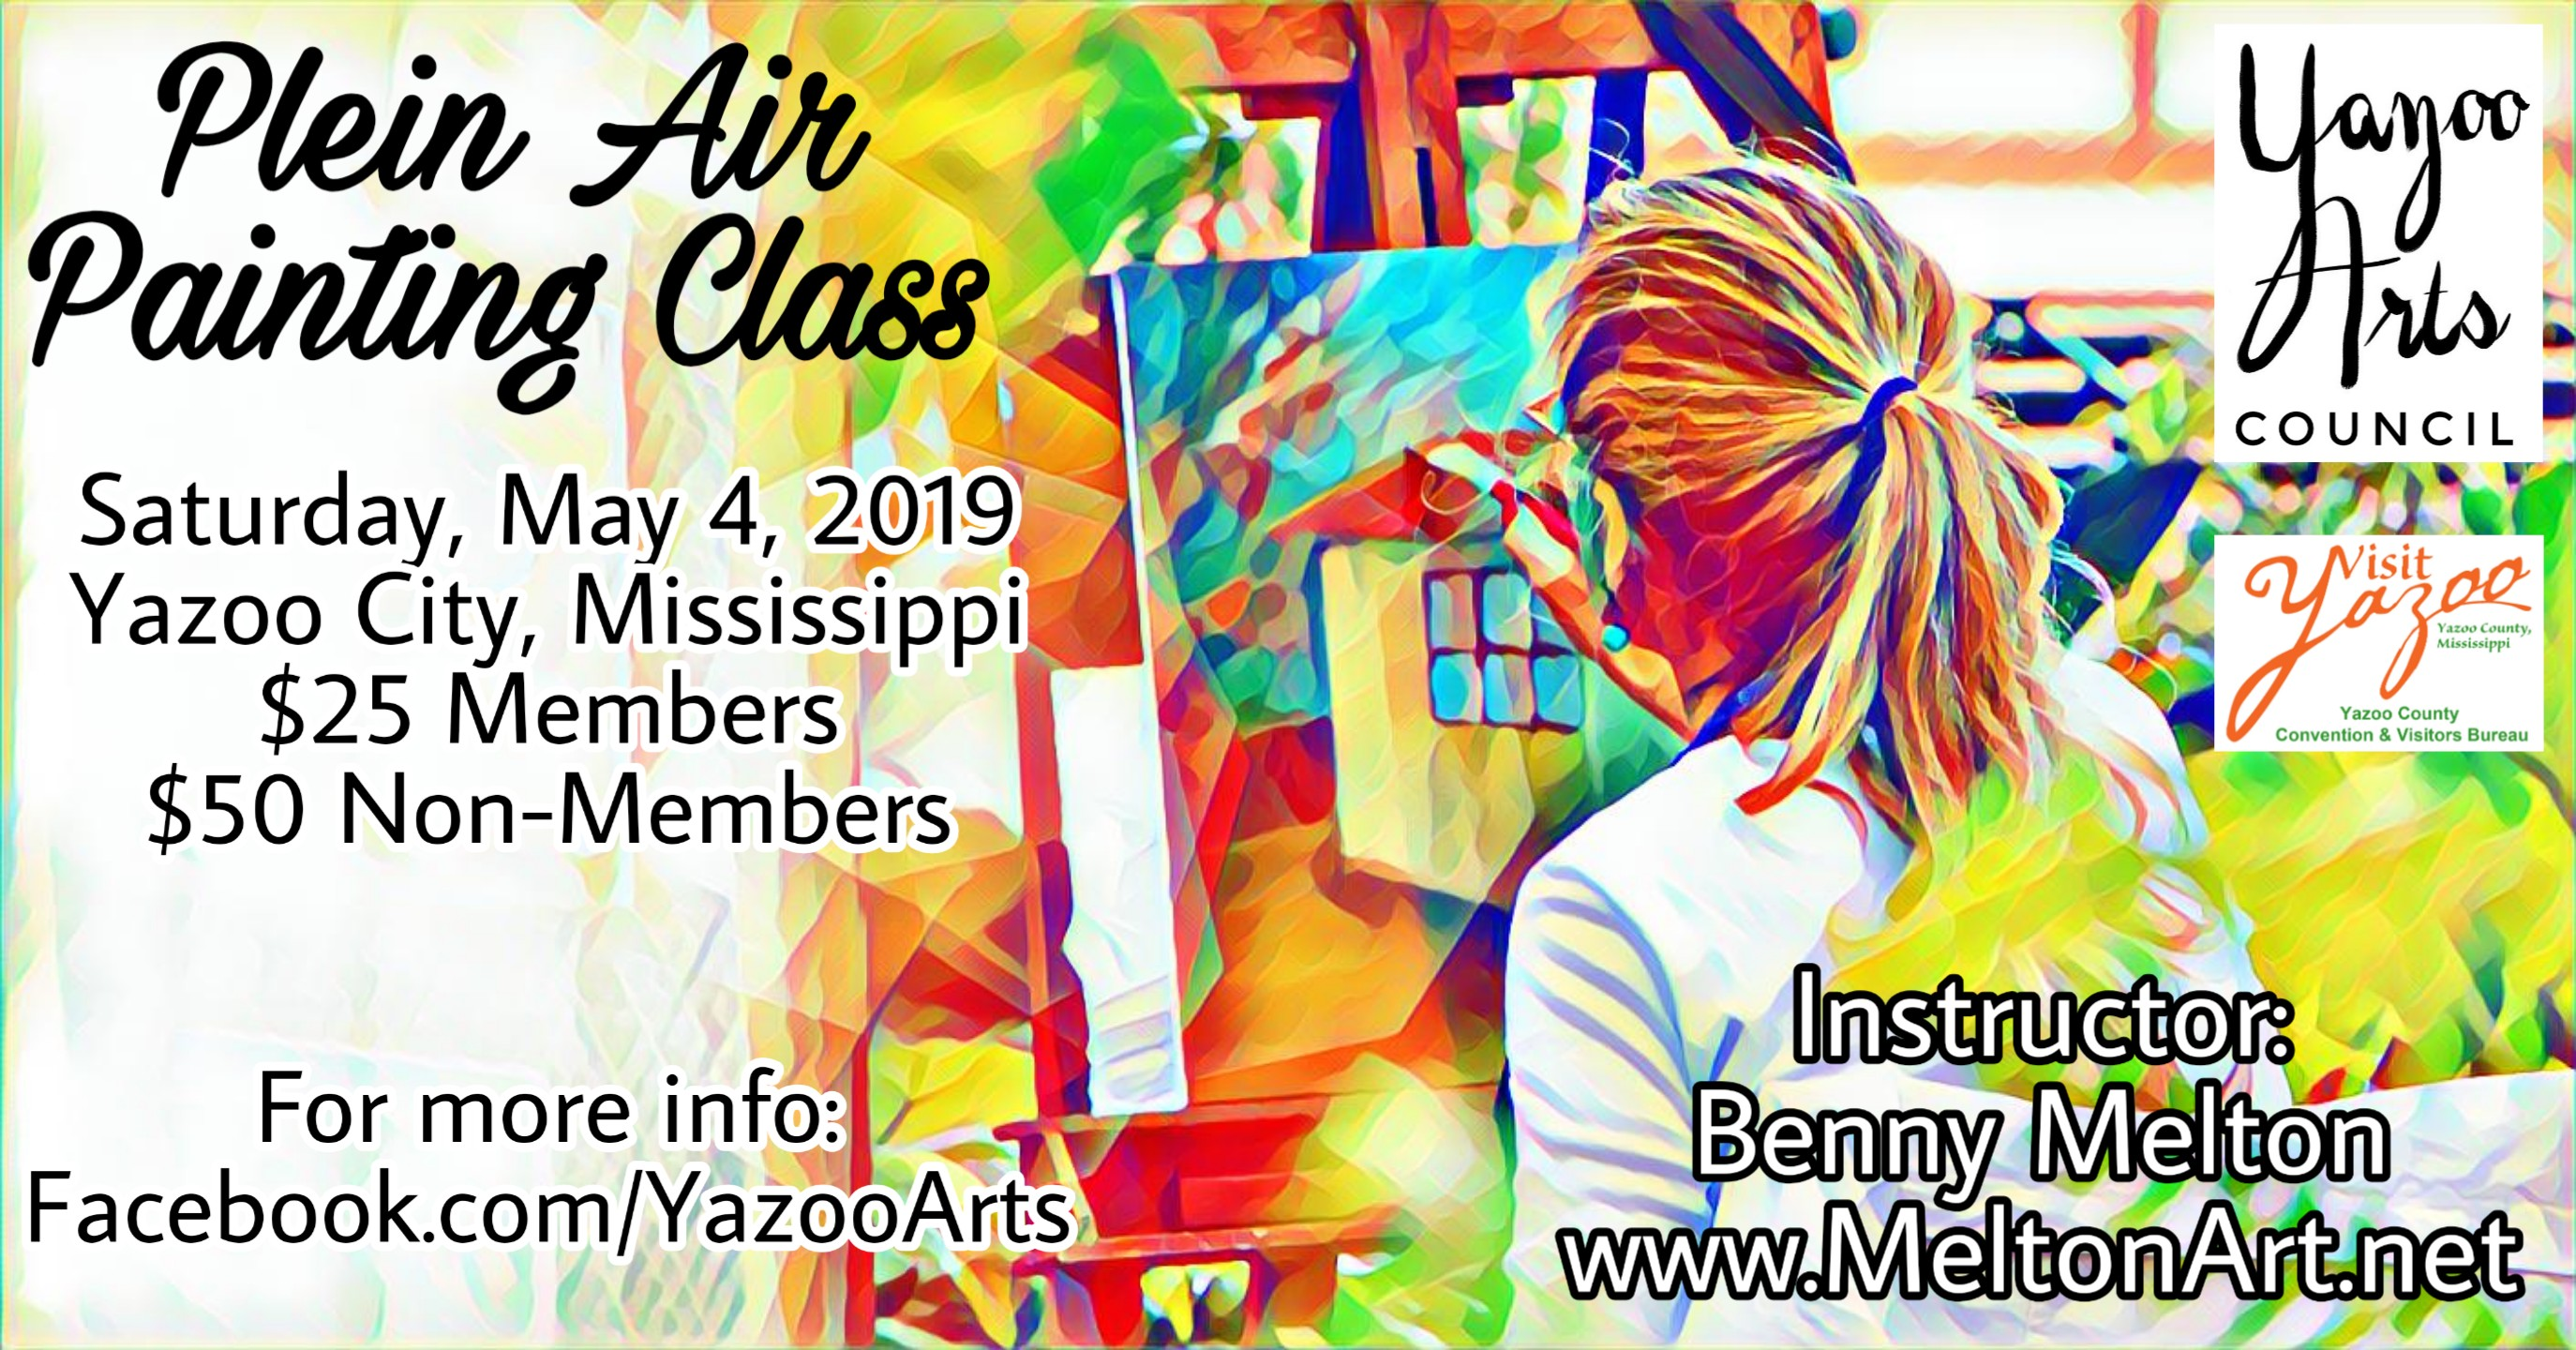 Plein Air Painting Class by Benny Melton